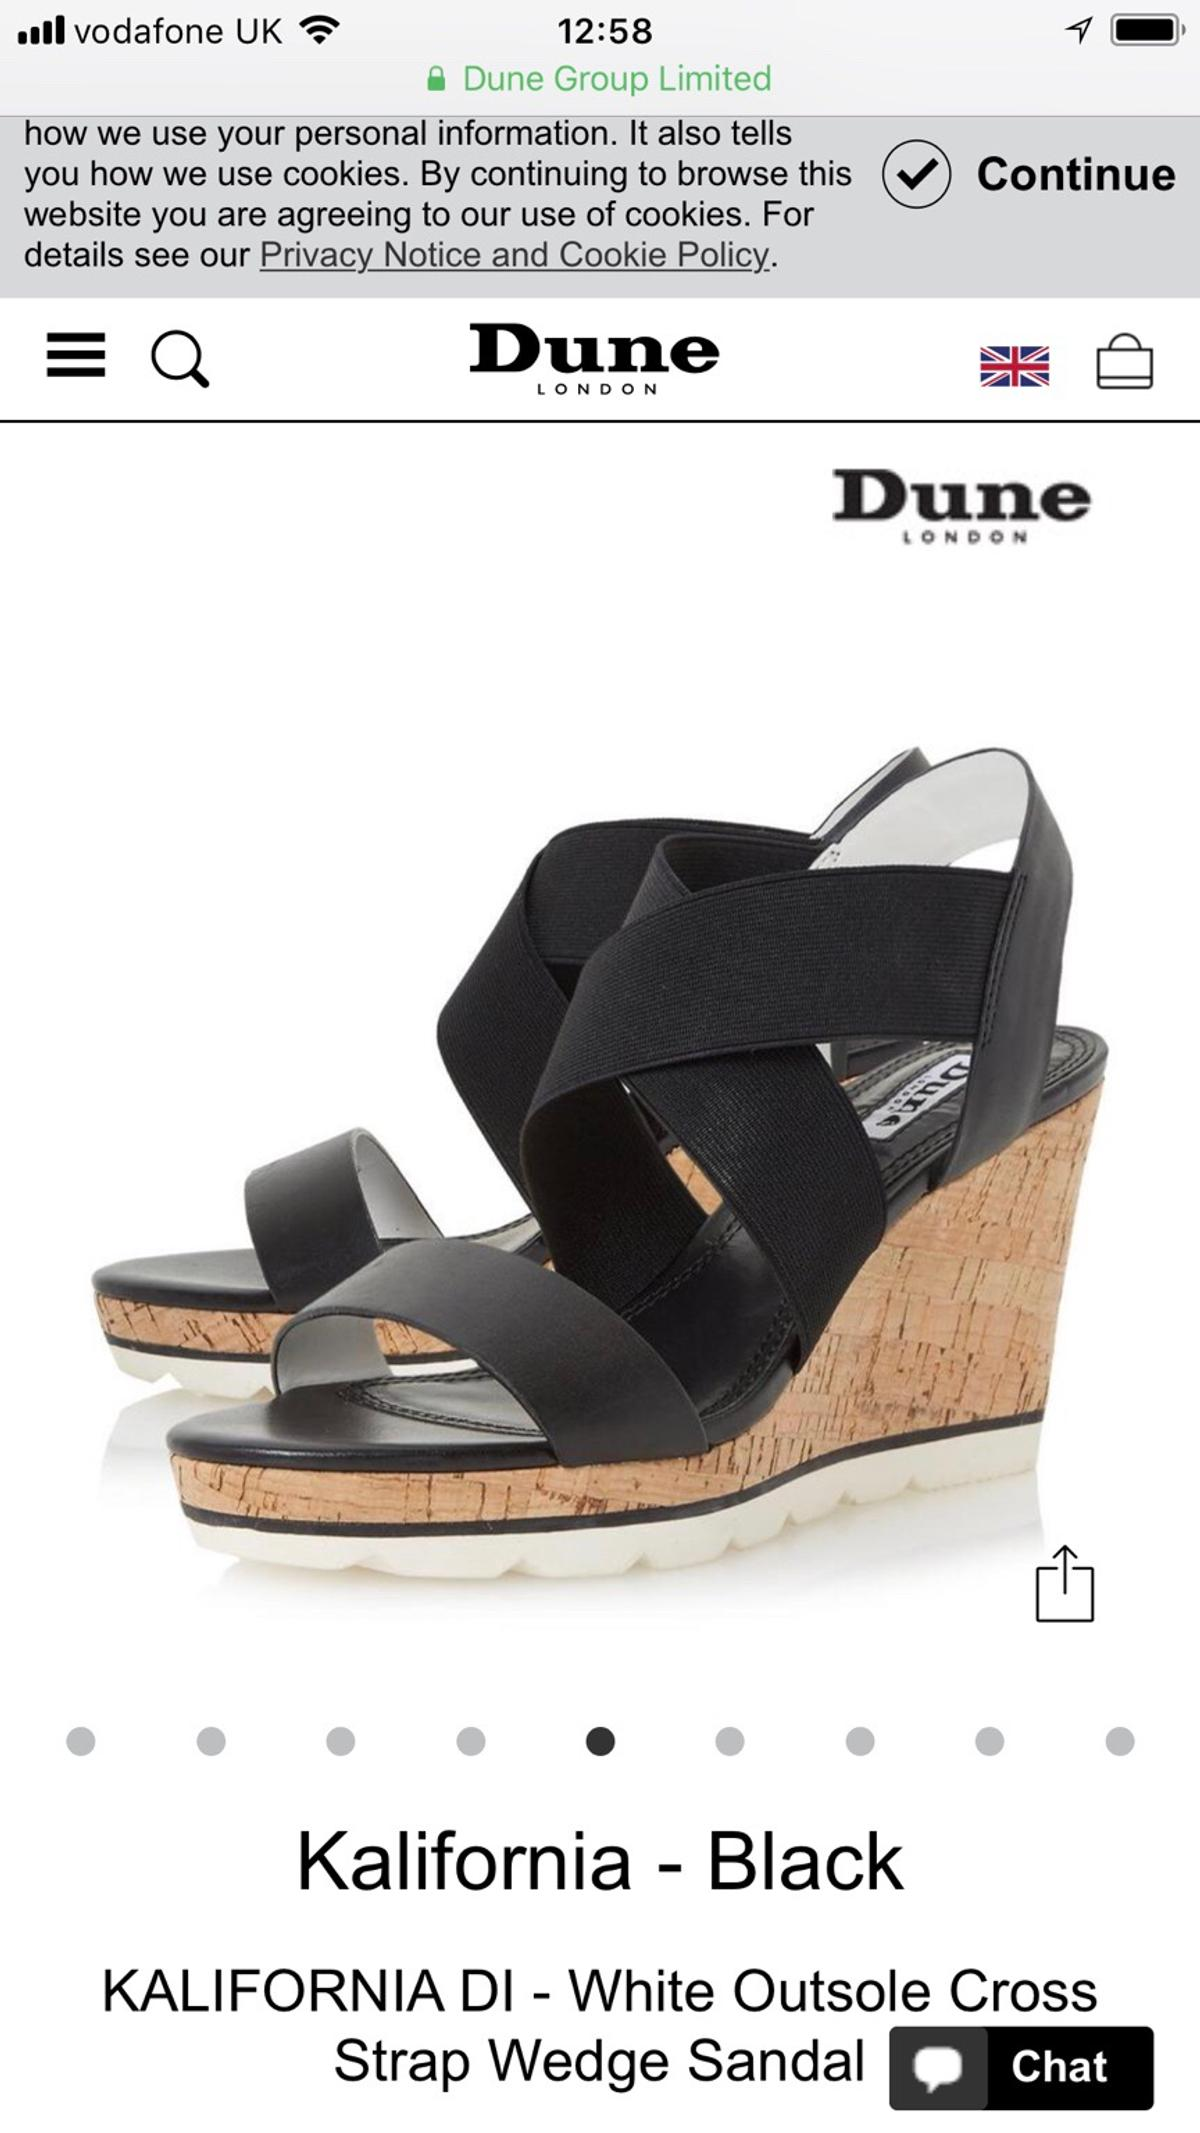 e58a329cc Dune Black Wedges in S1 Sheffield for £25.00 for sale - Shpock